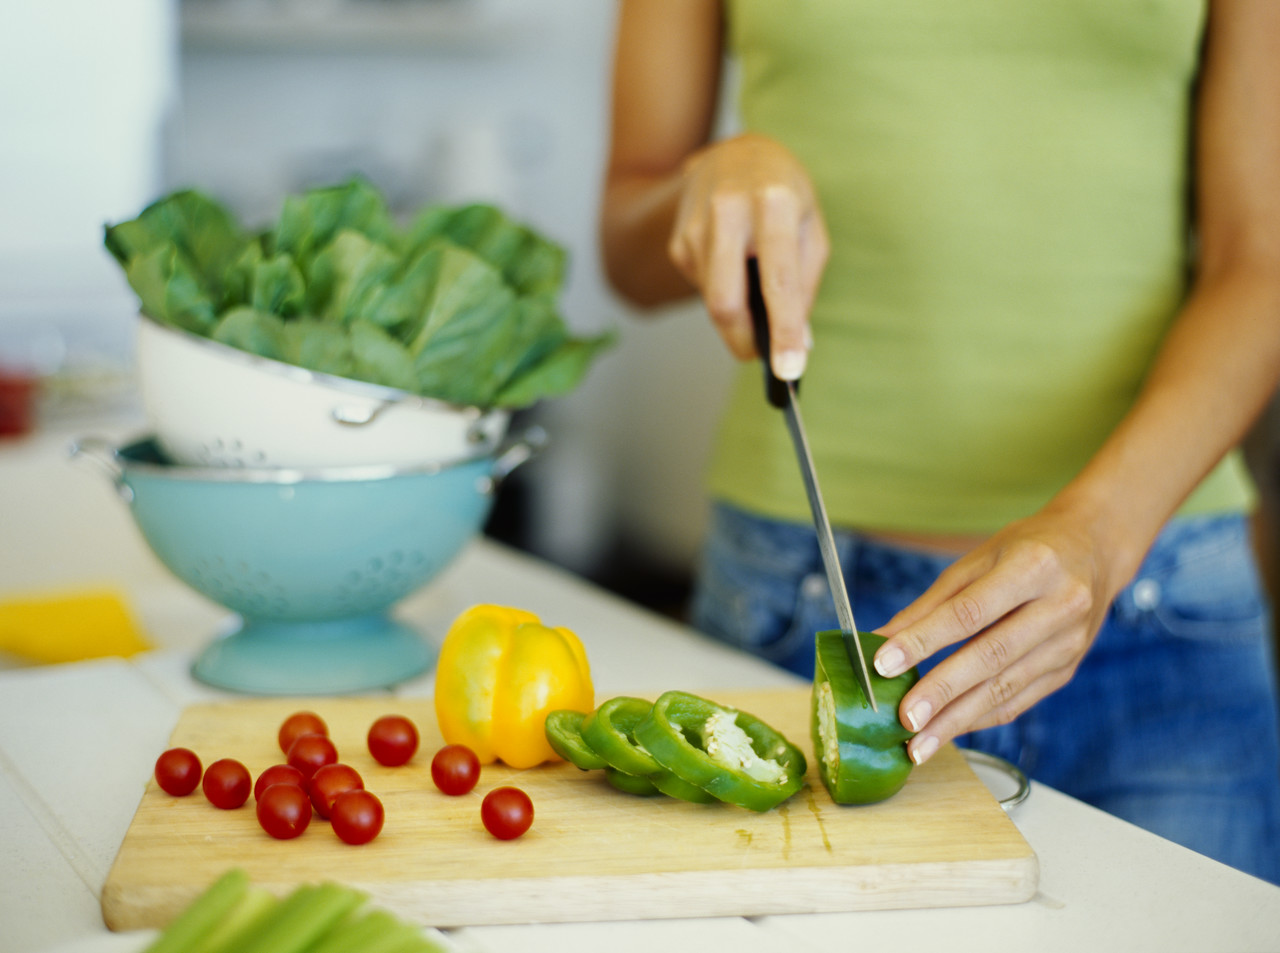 A woman cutting vegetables